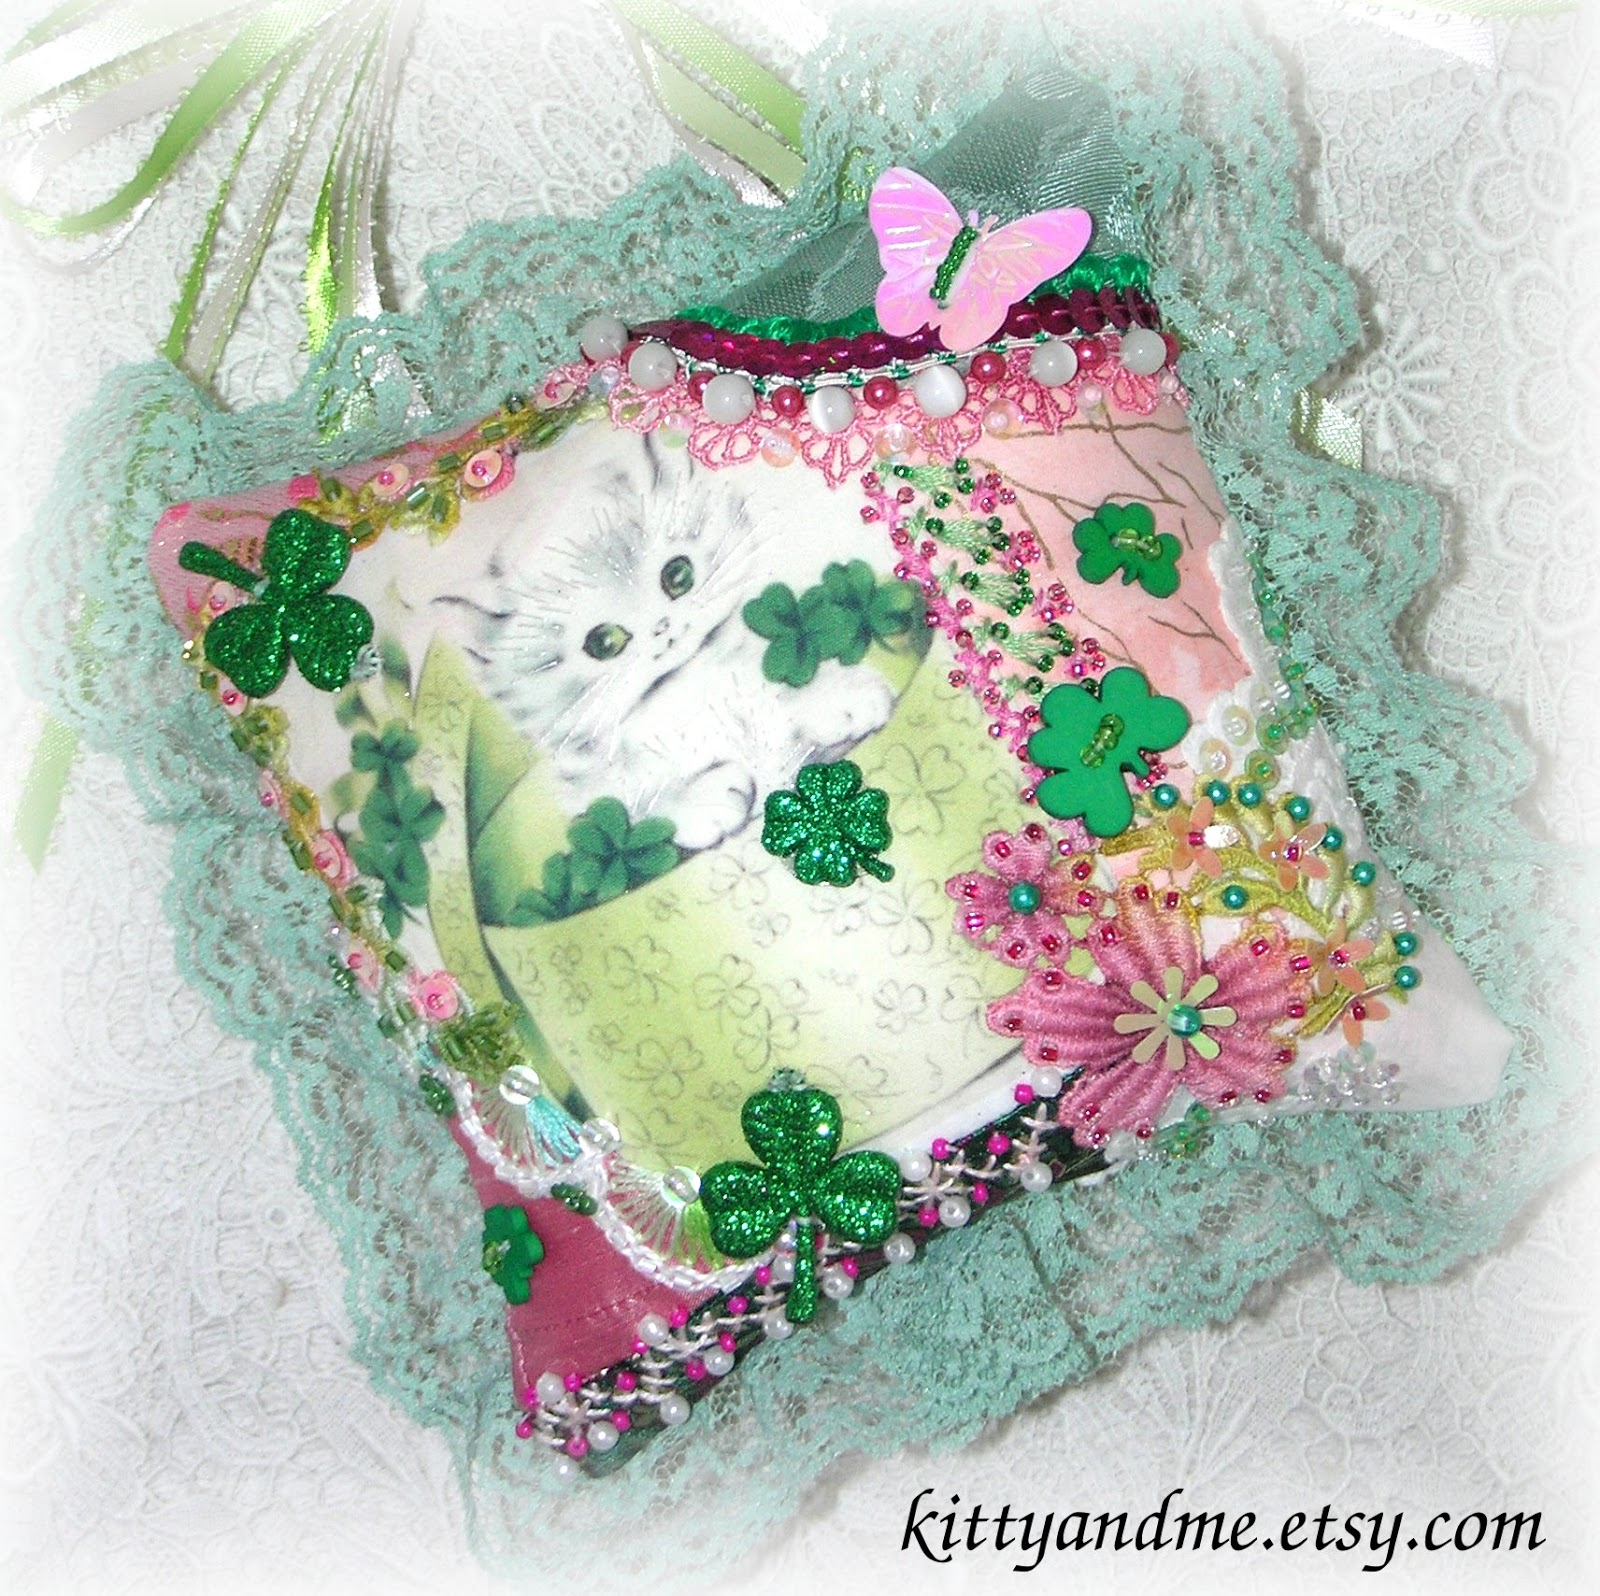 Tgf Decoration Kitty And Me Designs Handmade St Patricks Day Decor